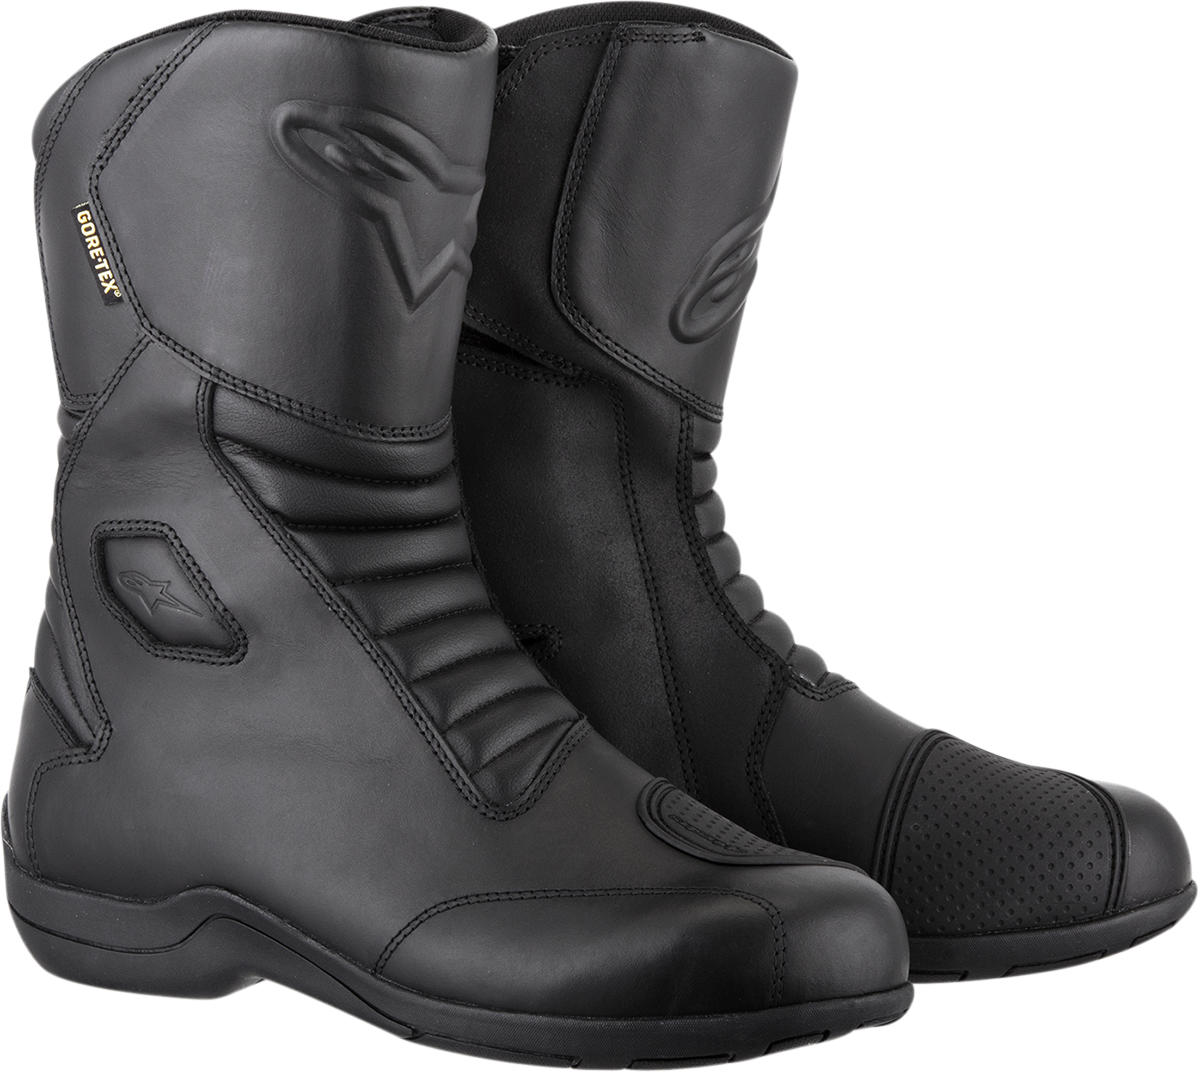 Alpinestars Mens Web Gore-Tex waterproof leather motorcycle riding boots